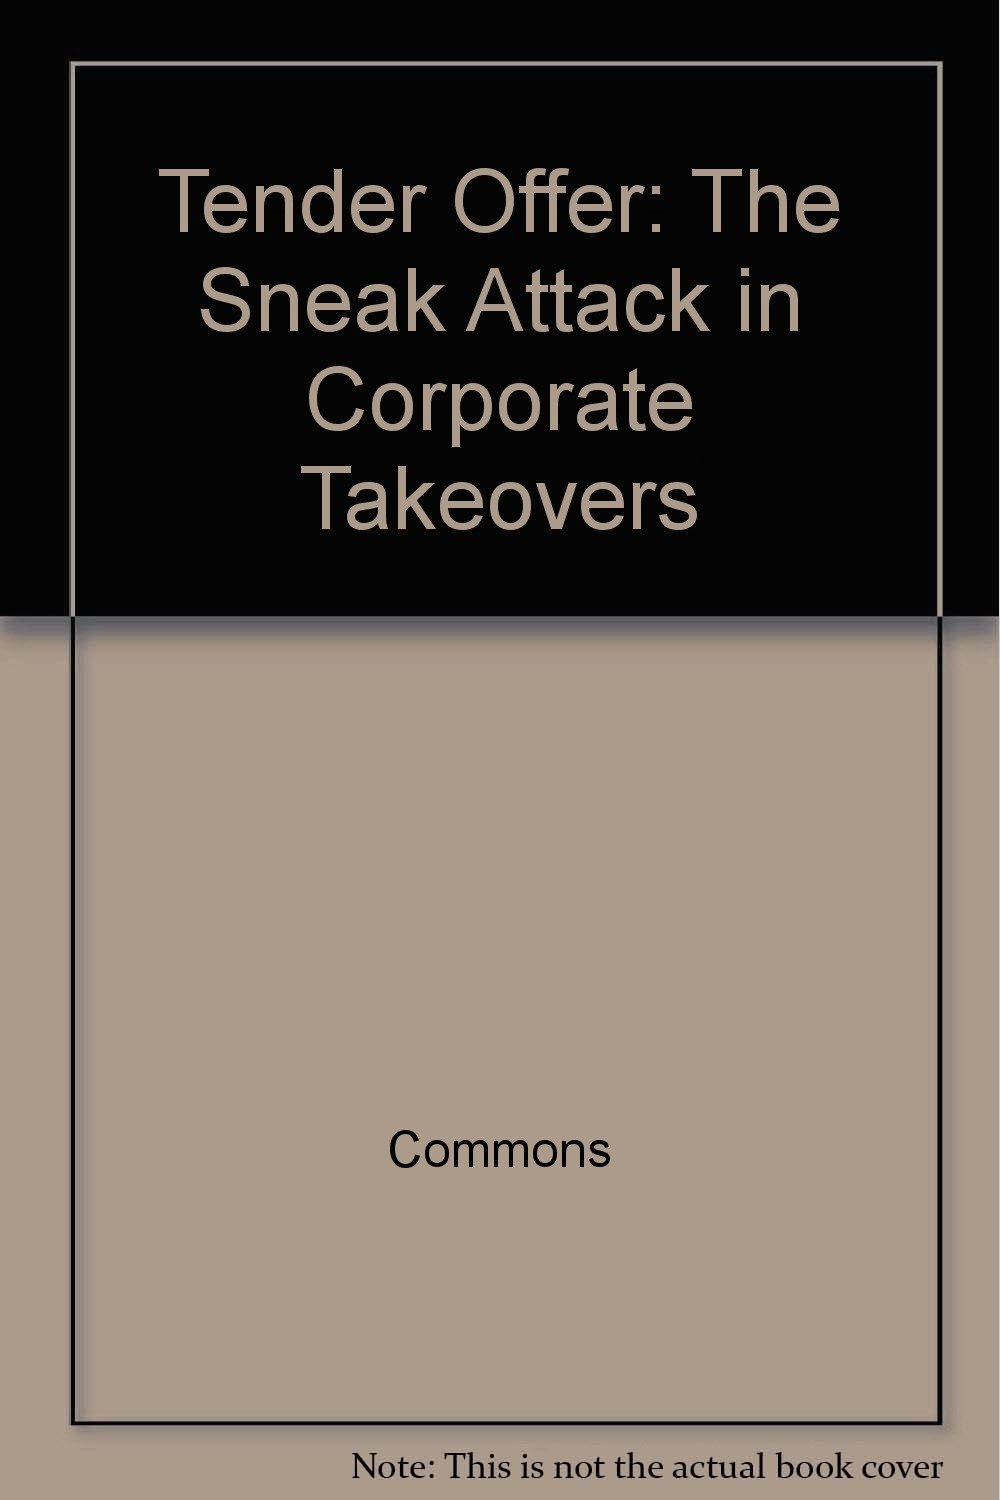 Tender Offer: The Sneak Attack in Corporate Takeovers: Dorman A